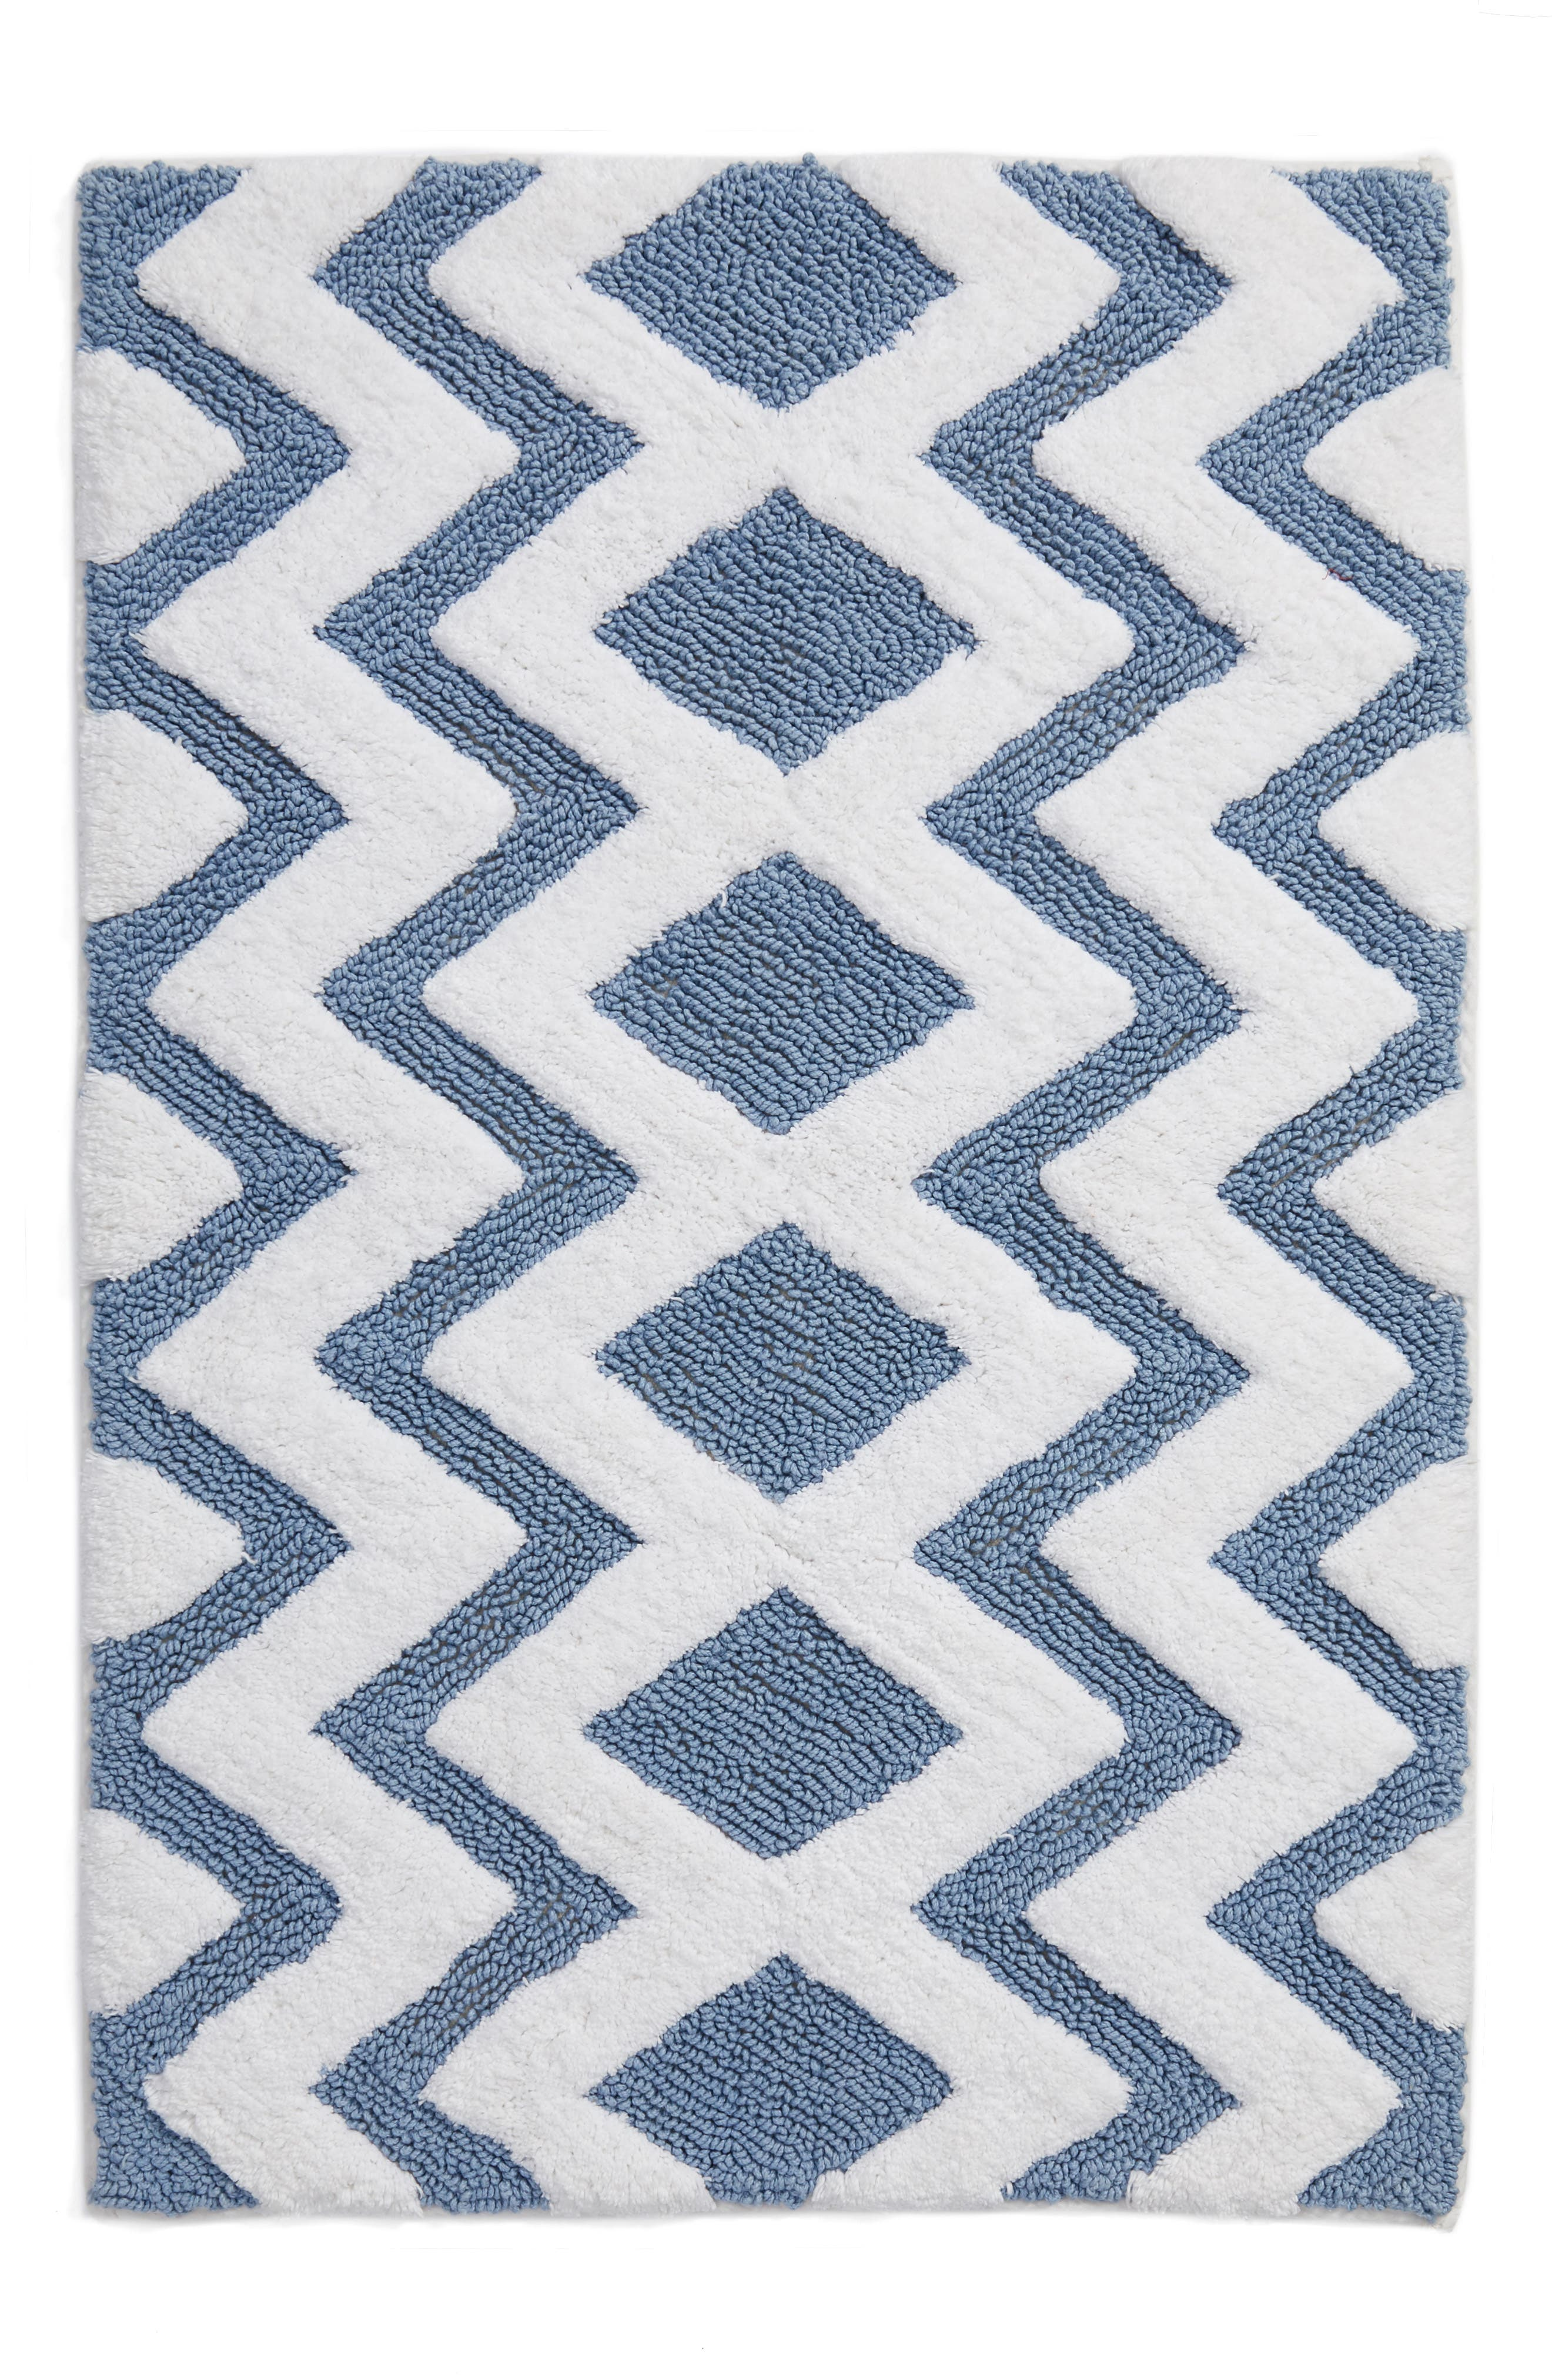 Geo Pattern Rug,                         Main,                         color, BLUE CHAMBRAY